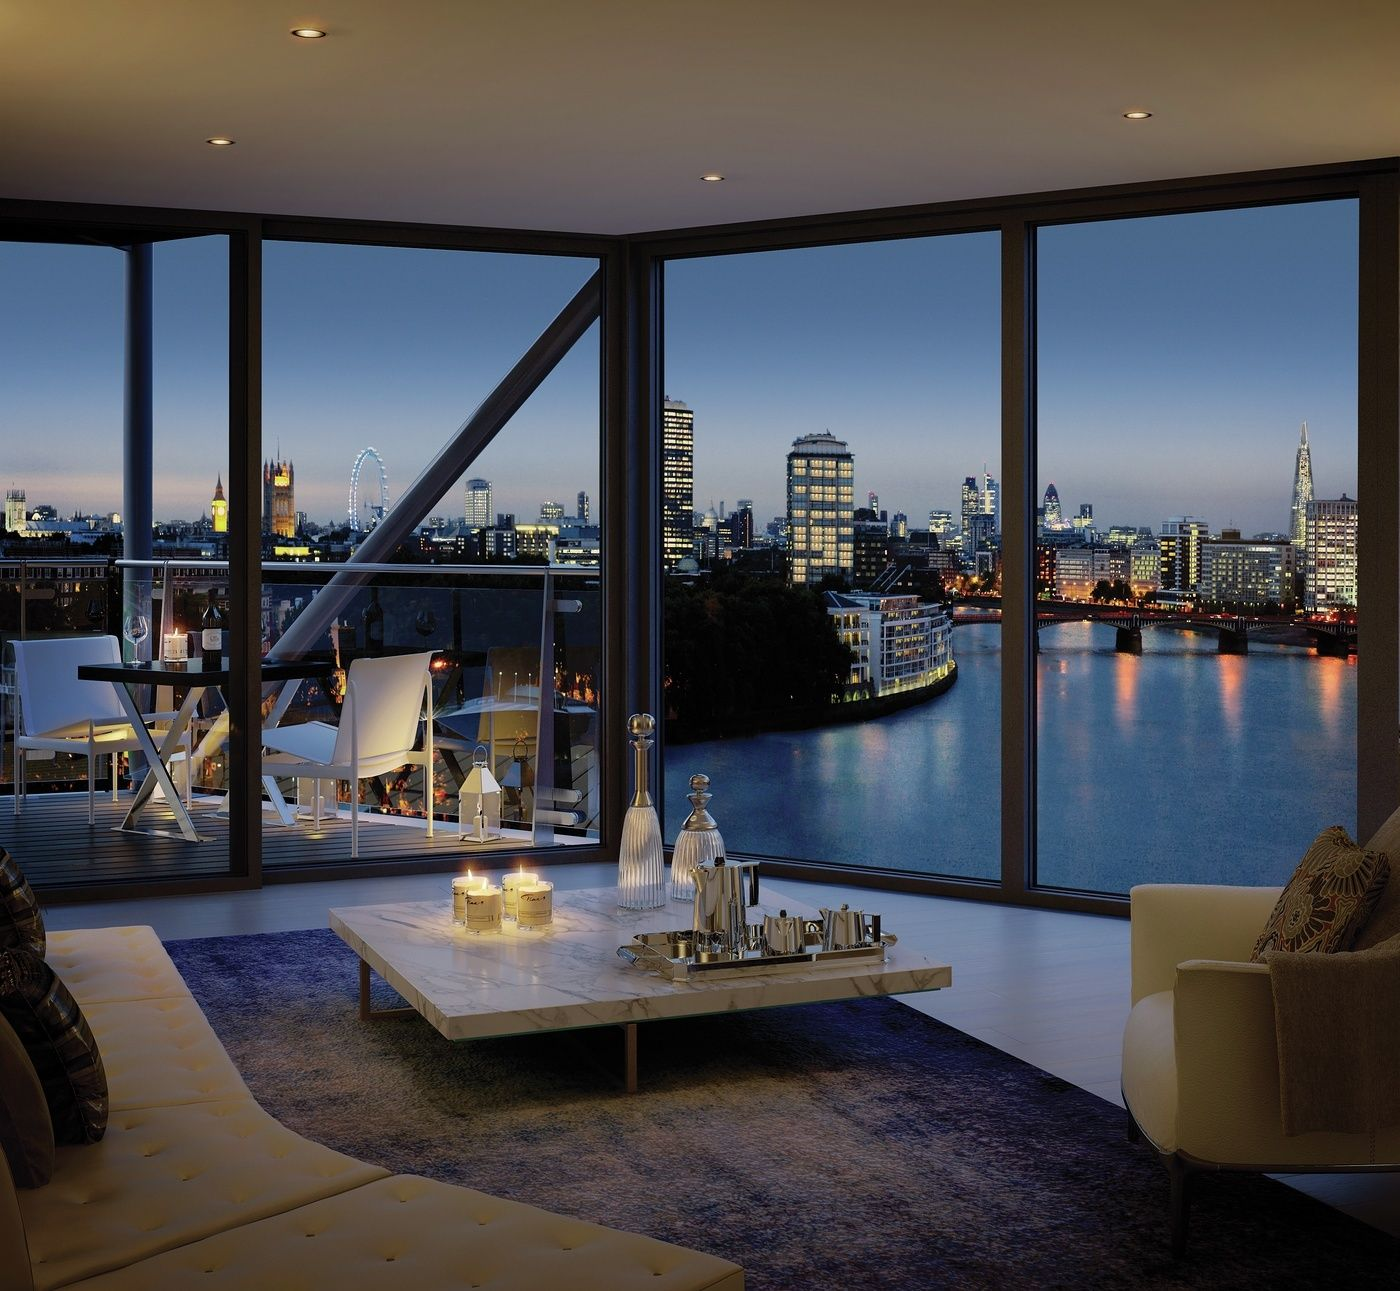 Room with a view from the Riverlight development in the